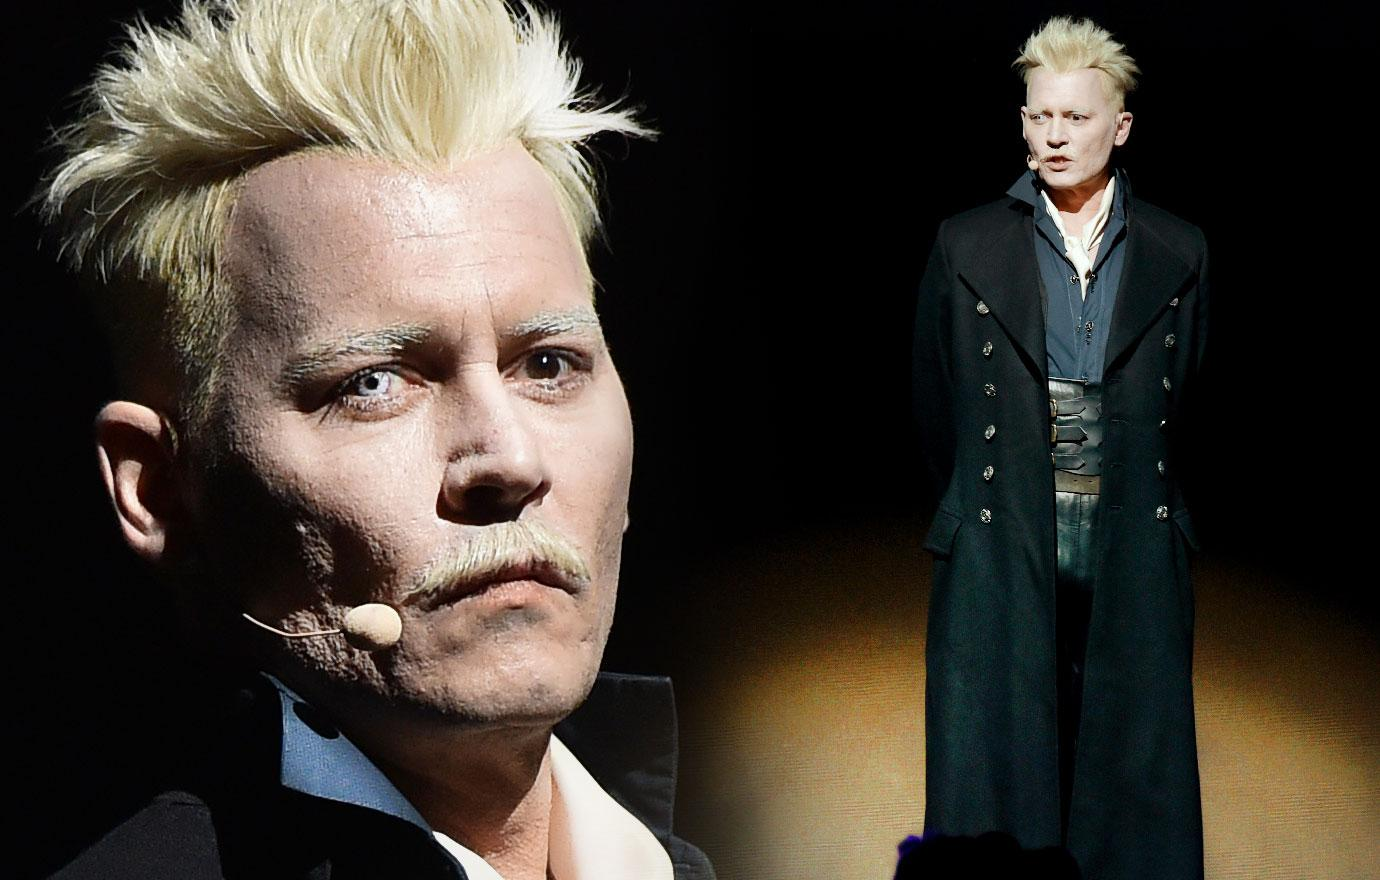 Johnny Depp Takes To The Stage At Comic-Con